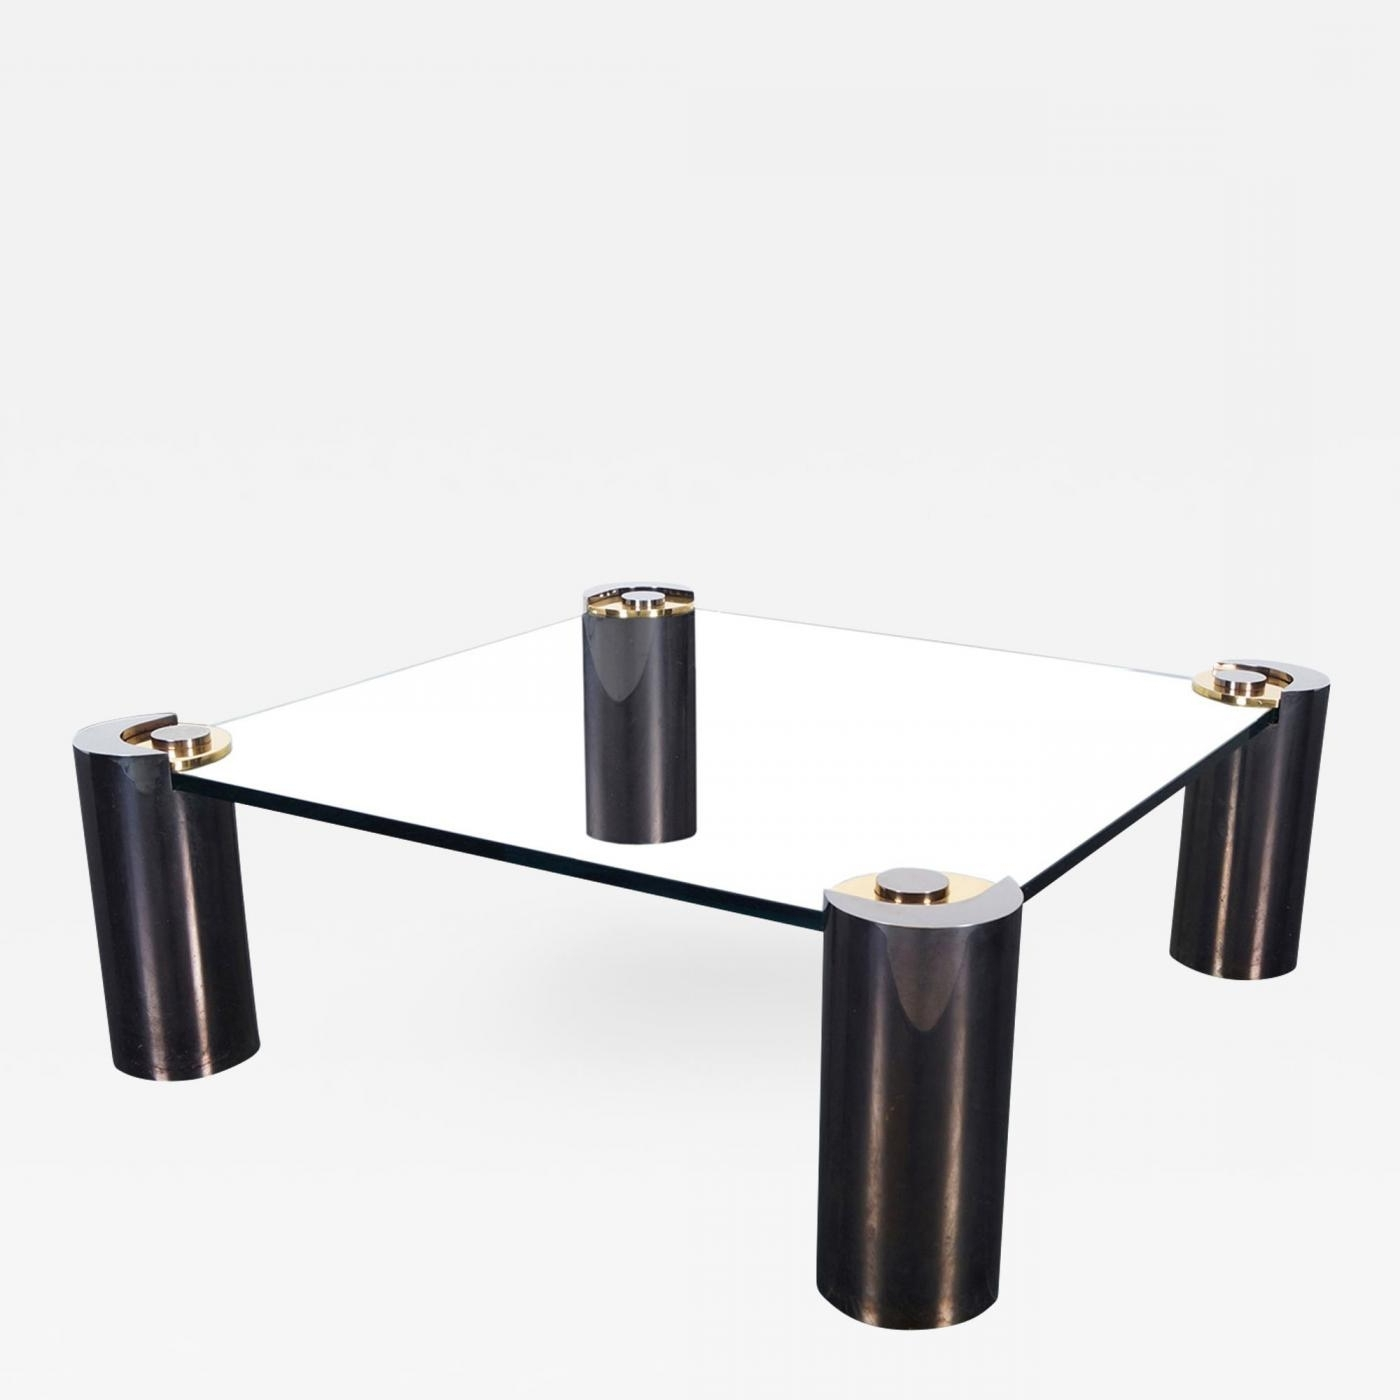 Karl Springer – Rare Vintage Gunmetal Coffee Tablekarl Springer With Regard To 2018 Gunmetal Coffee Tables (Gallery 2 of 20)